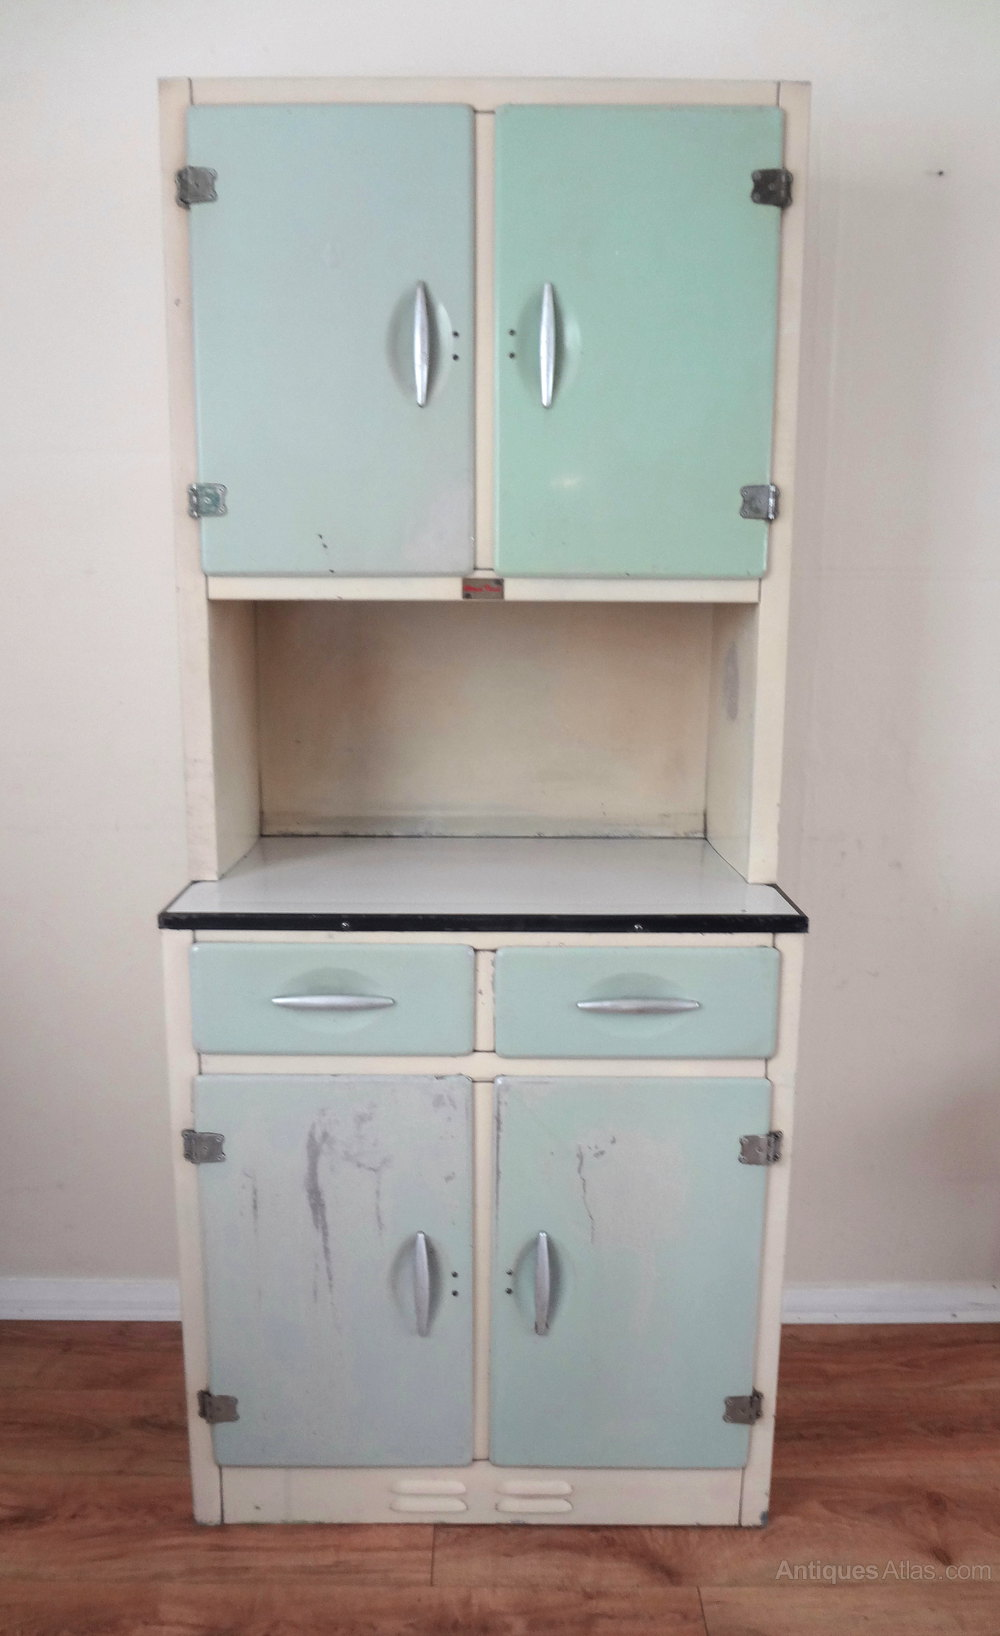 Antiques Atlas Retro Kitchen Larder Cupboard